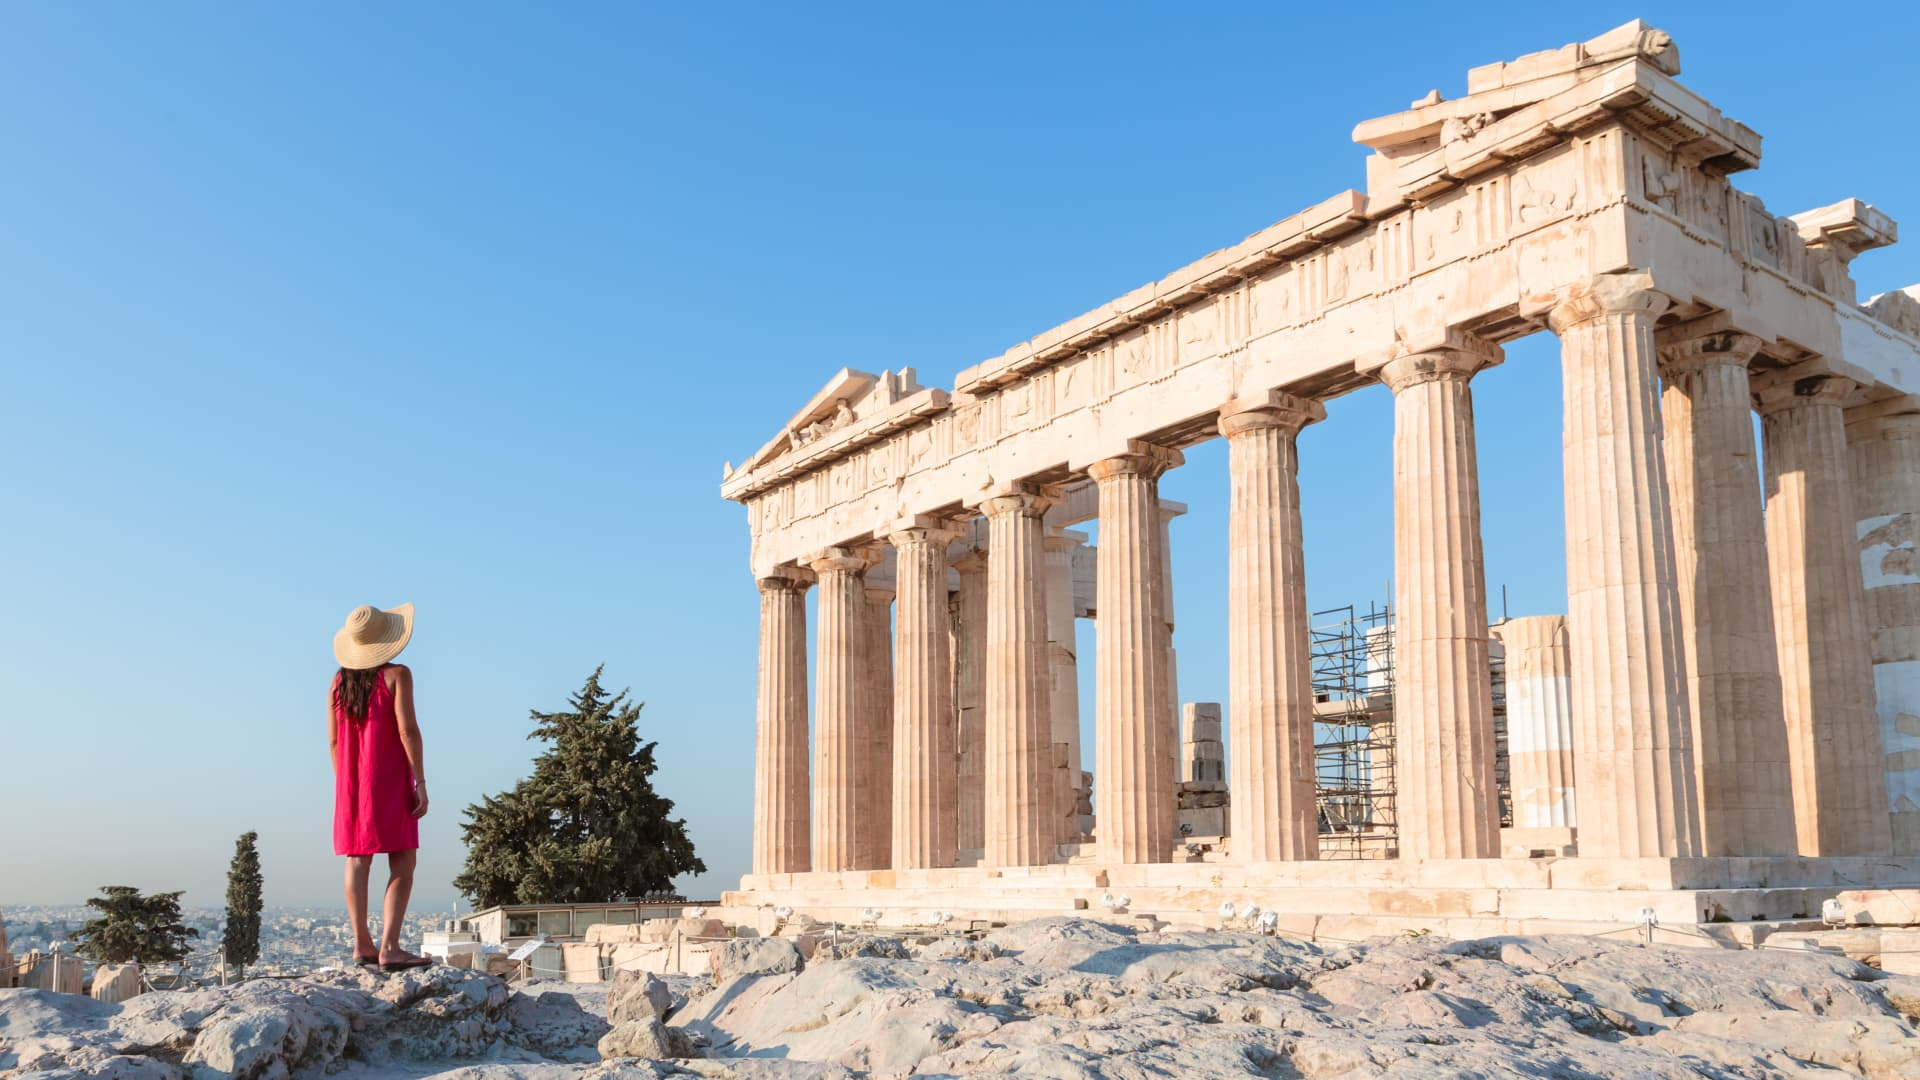 Though the Acropolis has reopened, Greece is currently under lockdown-type restrictions with a nighttime curfew and store and restaurant closures.